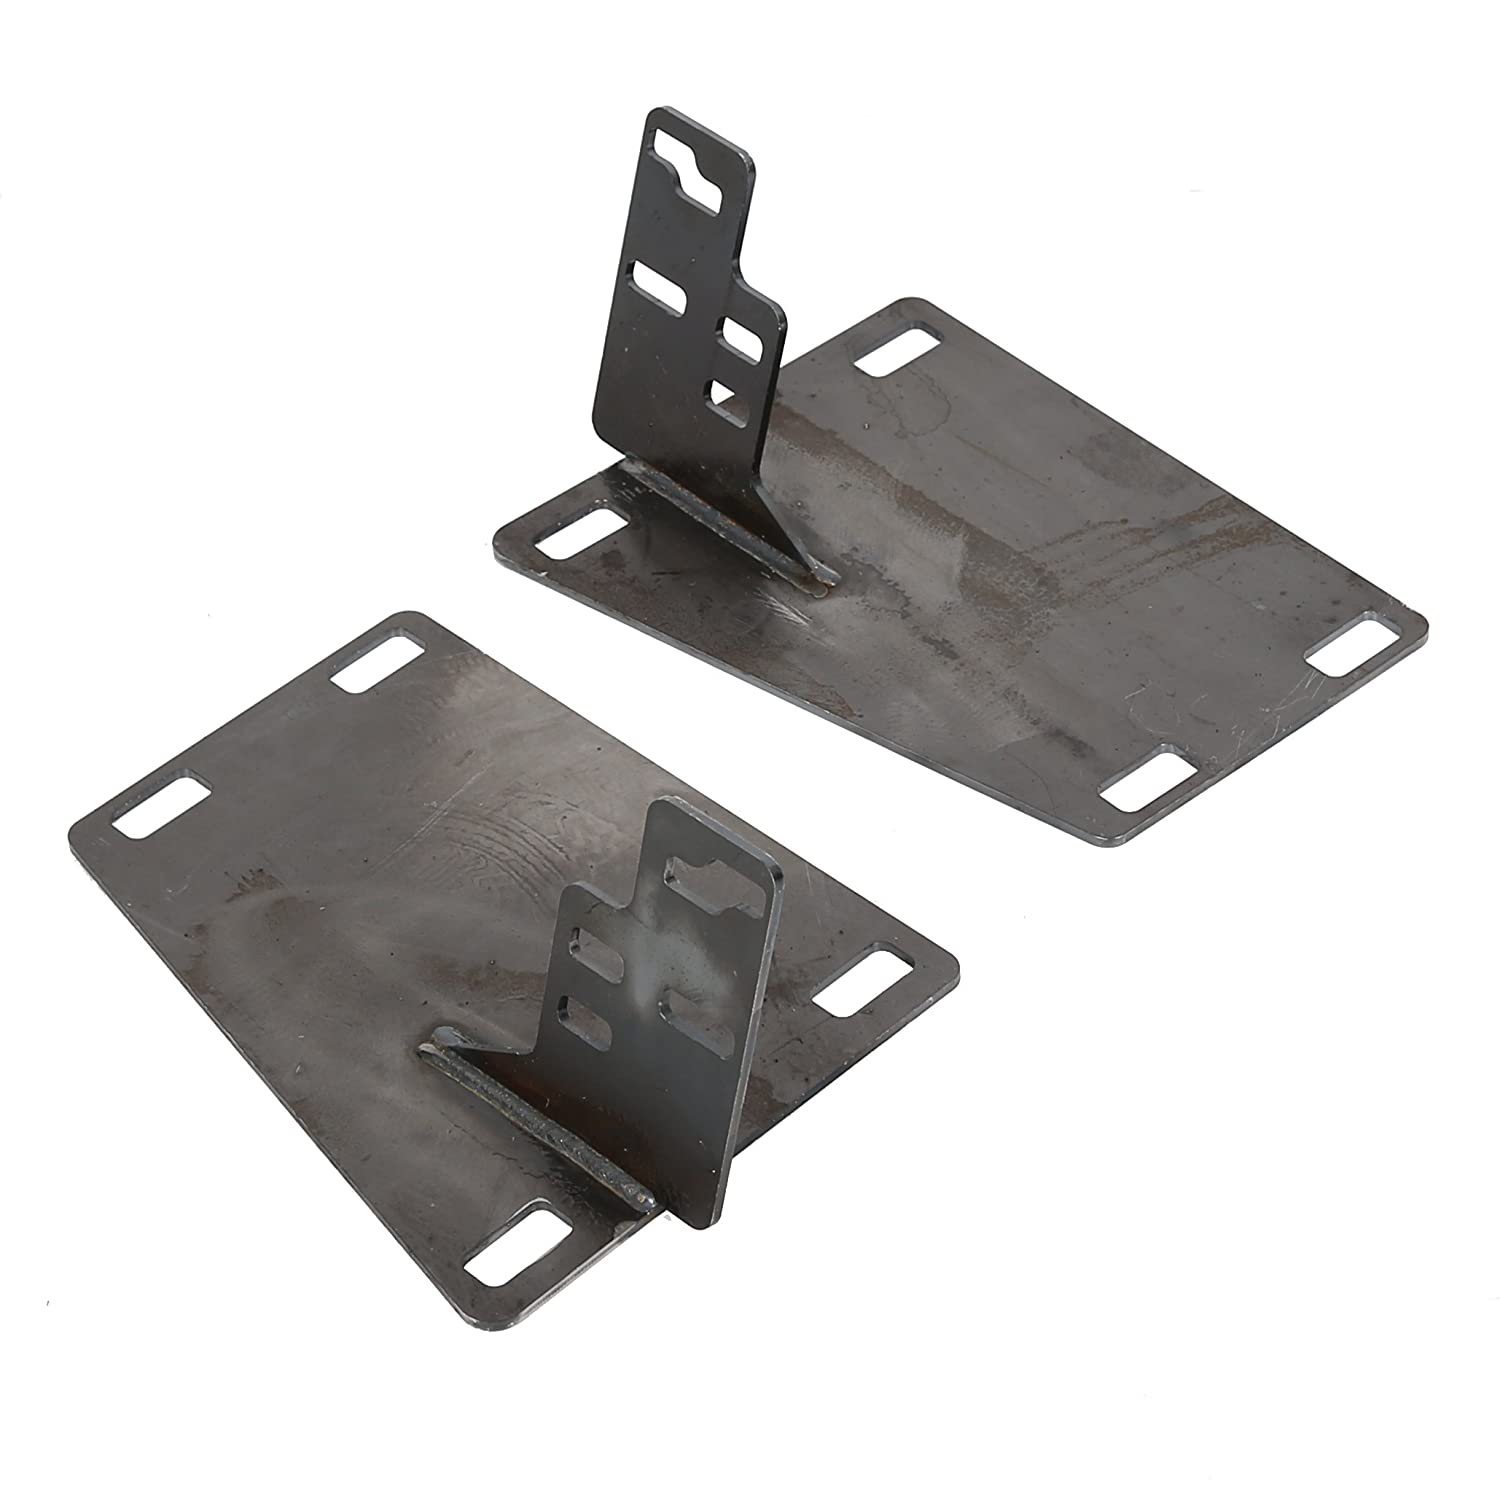 ECOTRIC 4th to 2nd gen Bumper Conversion Brackets fit Dodge Ram 1500//2500//3500 from 94-02 2nd gen Body Electrophoresis Painted//Unpainted Unpainted